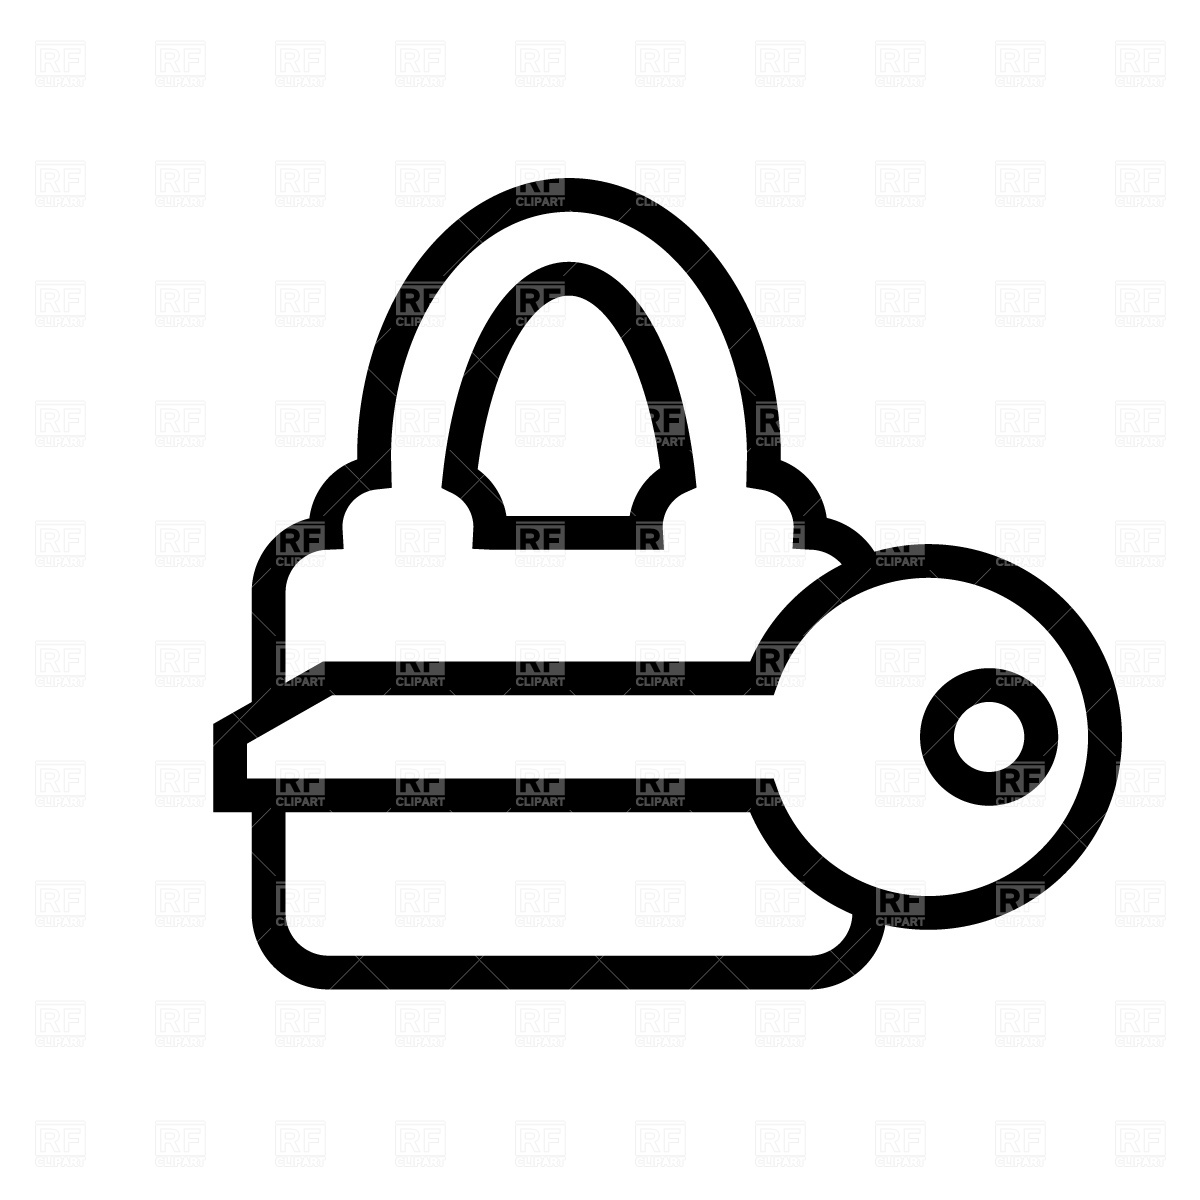 Key to a lock clipart.